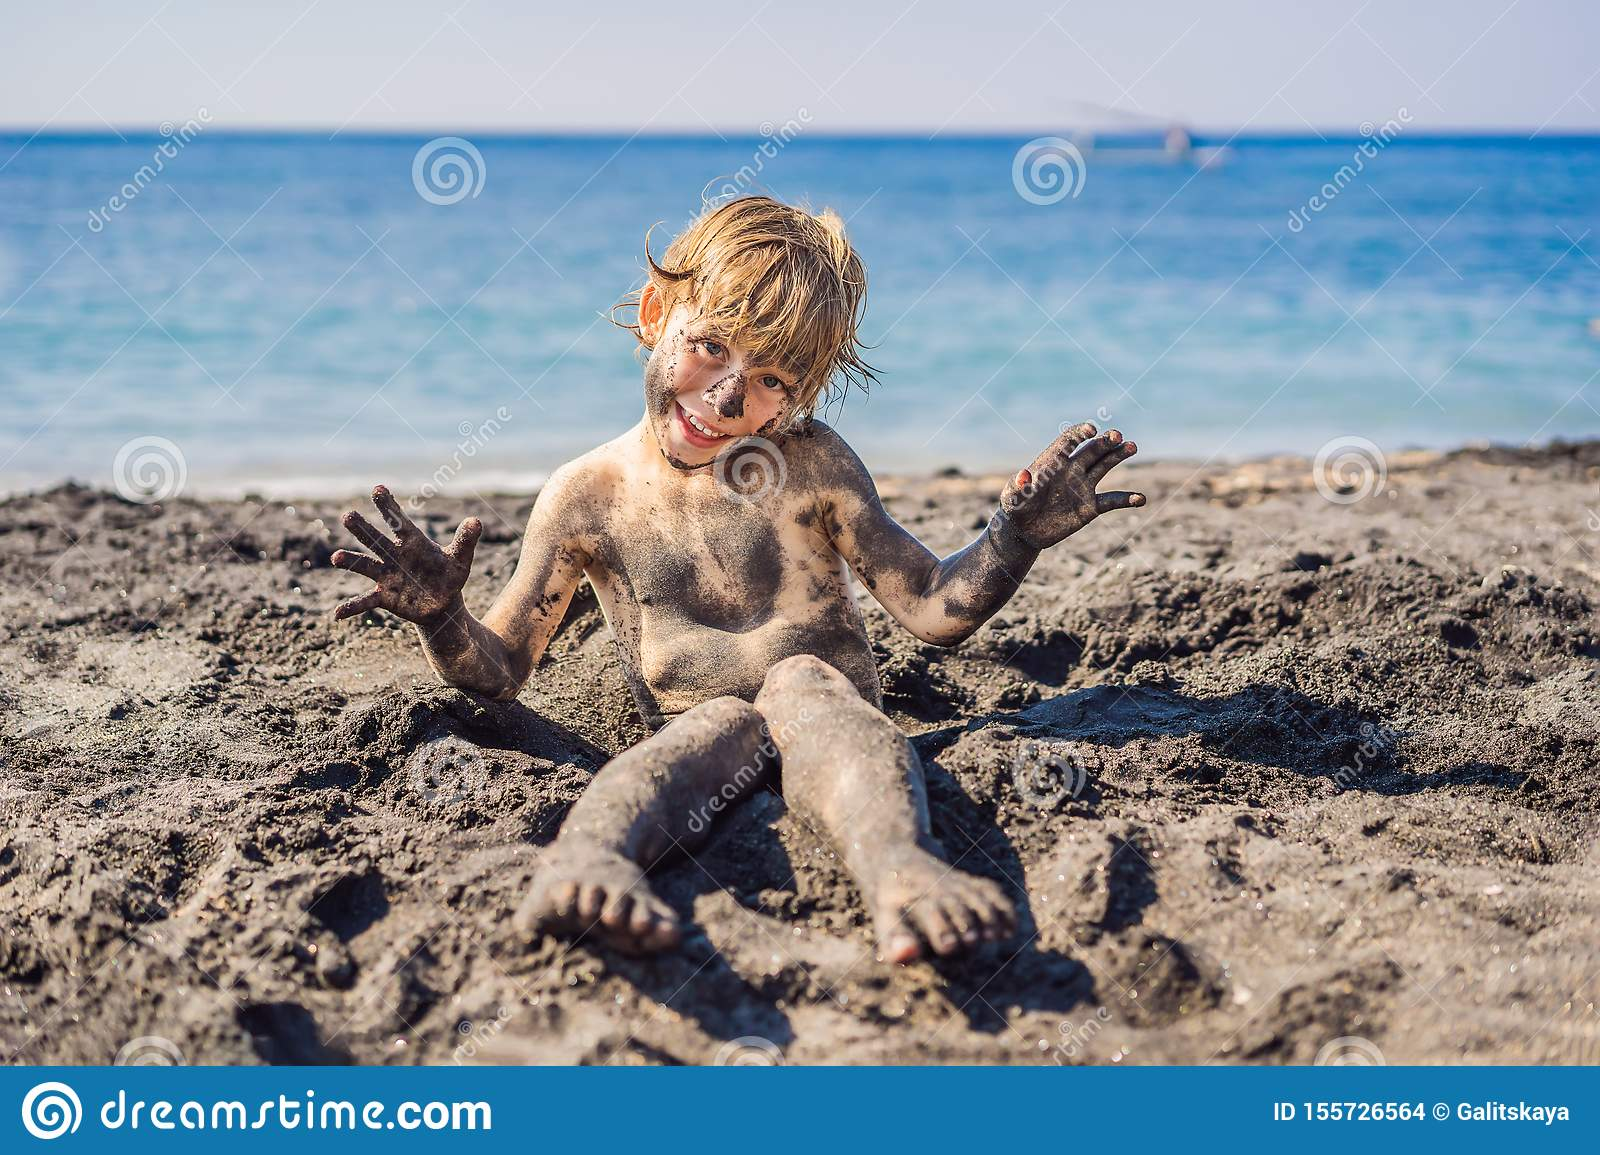 Black Friday concept. Smiling boy with dirty Black face sitting and playing on black sand sea beach before swimming in